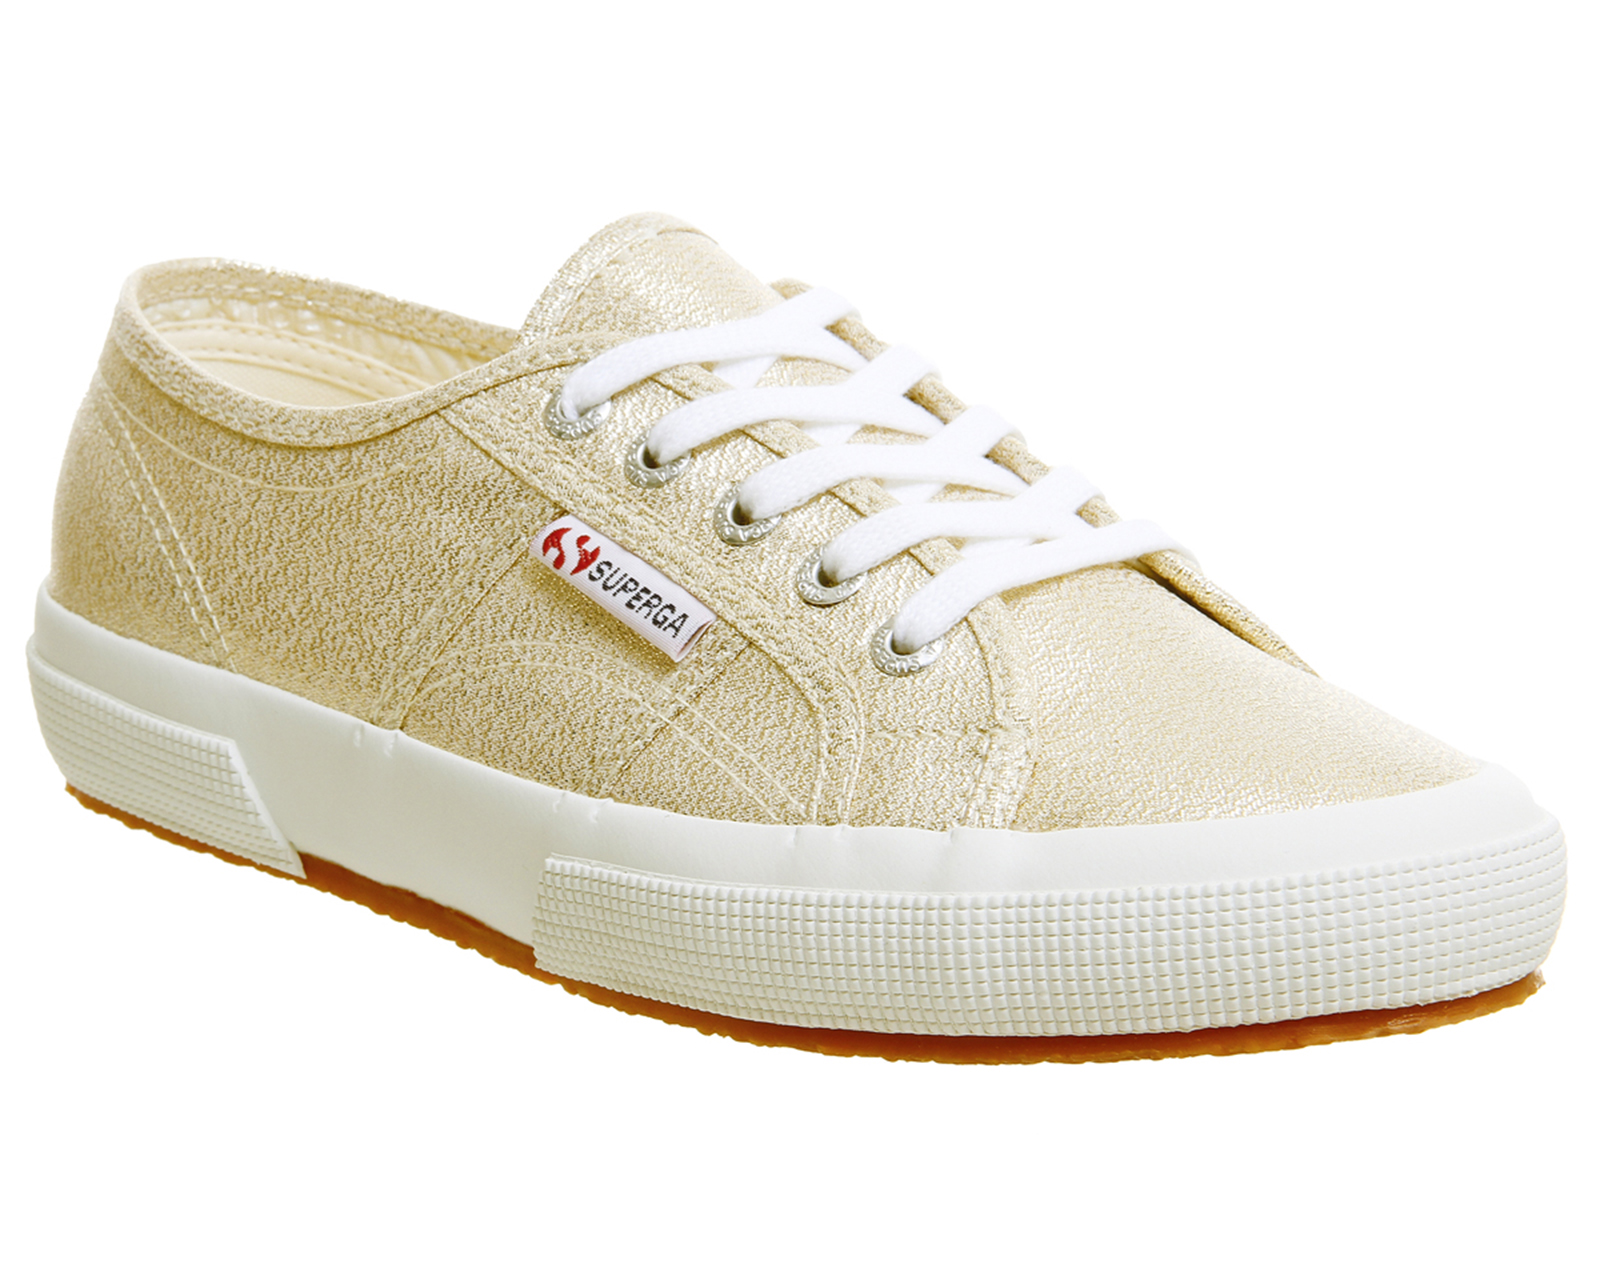 7ababa041fa6b5 Sentinel Womens Superga 2750 Trainers Yellow Gold Trainers Shoes